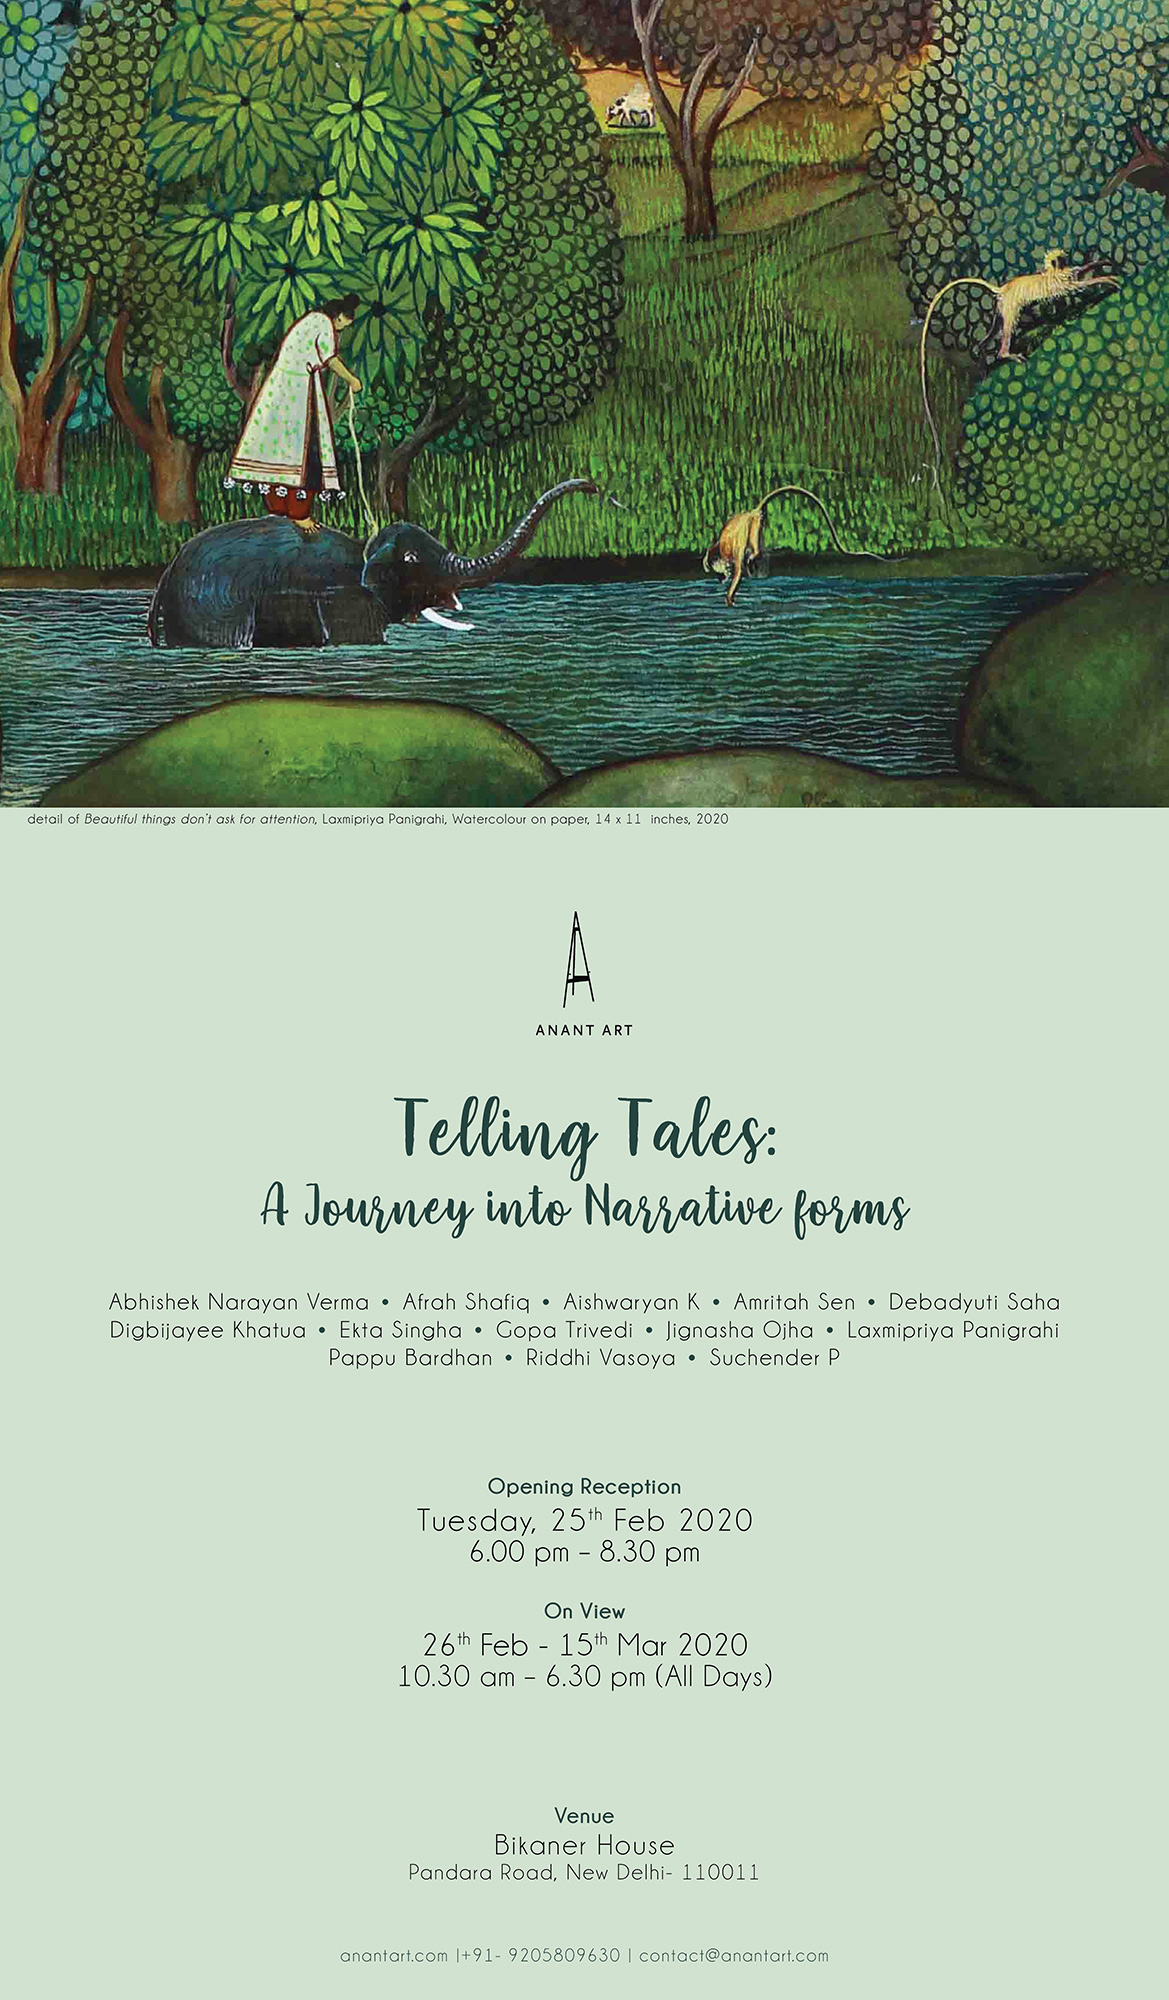 Telling Tales:A Journey into Narrative forms